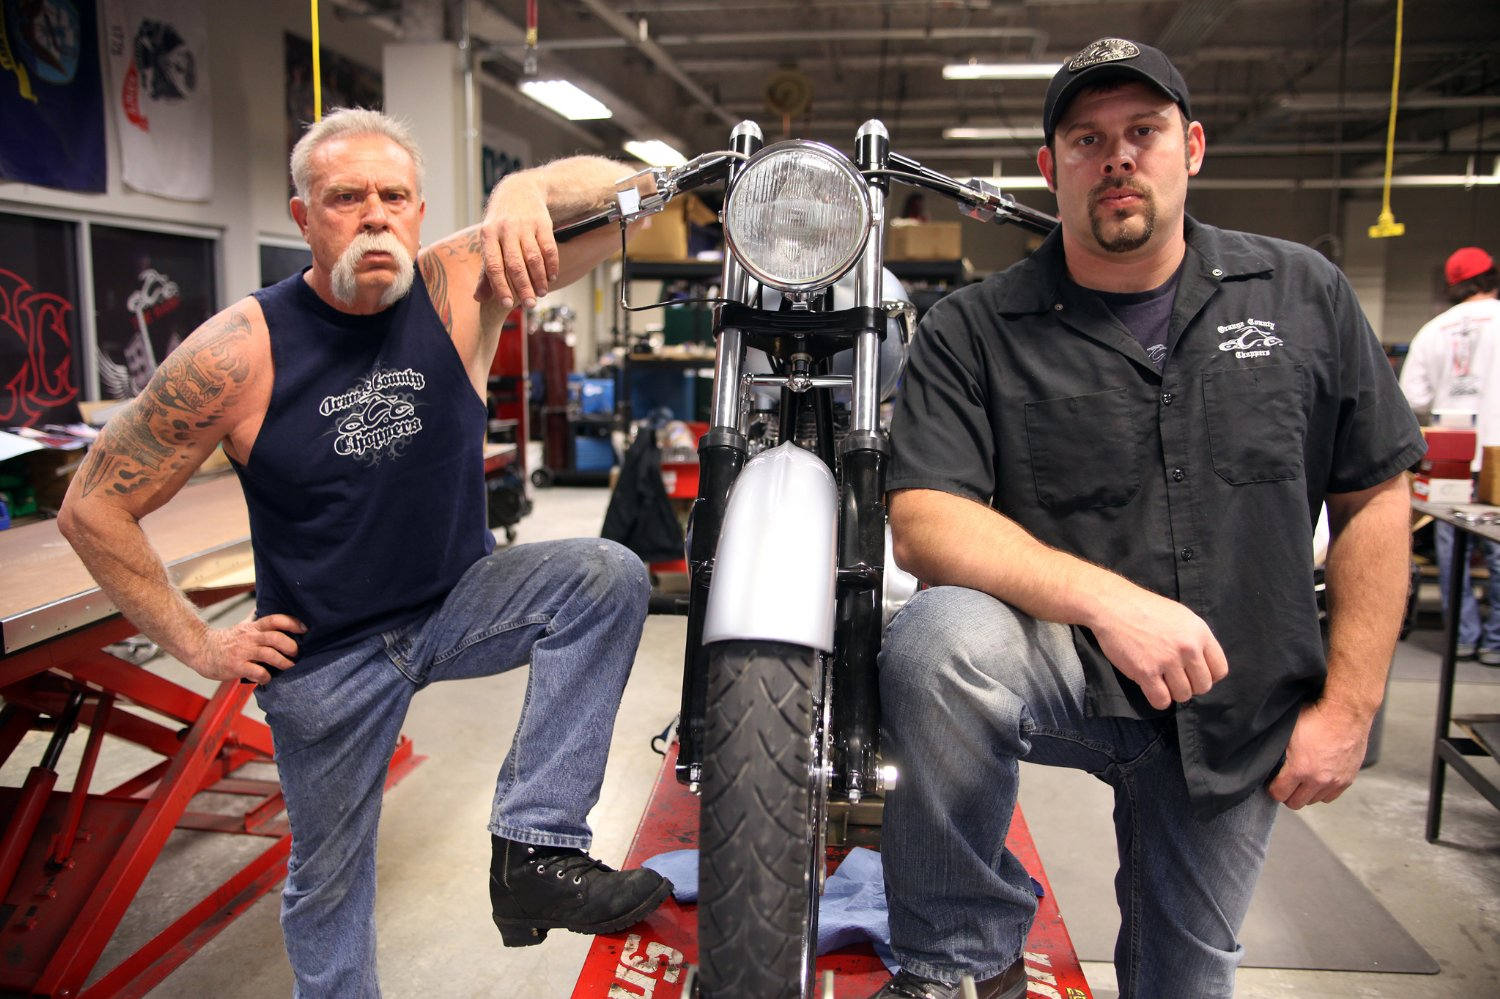 Paul Teutul Sr (left) and son Paul Teutul Jr (right) stand with a bike in between them